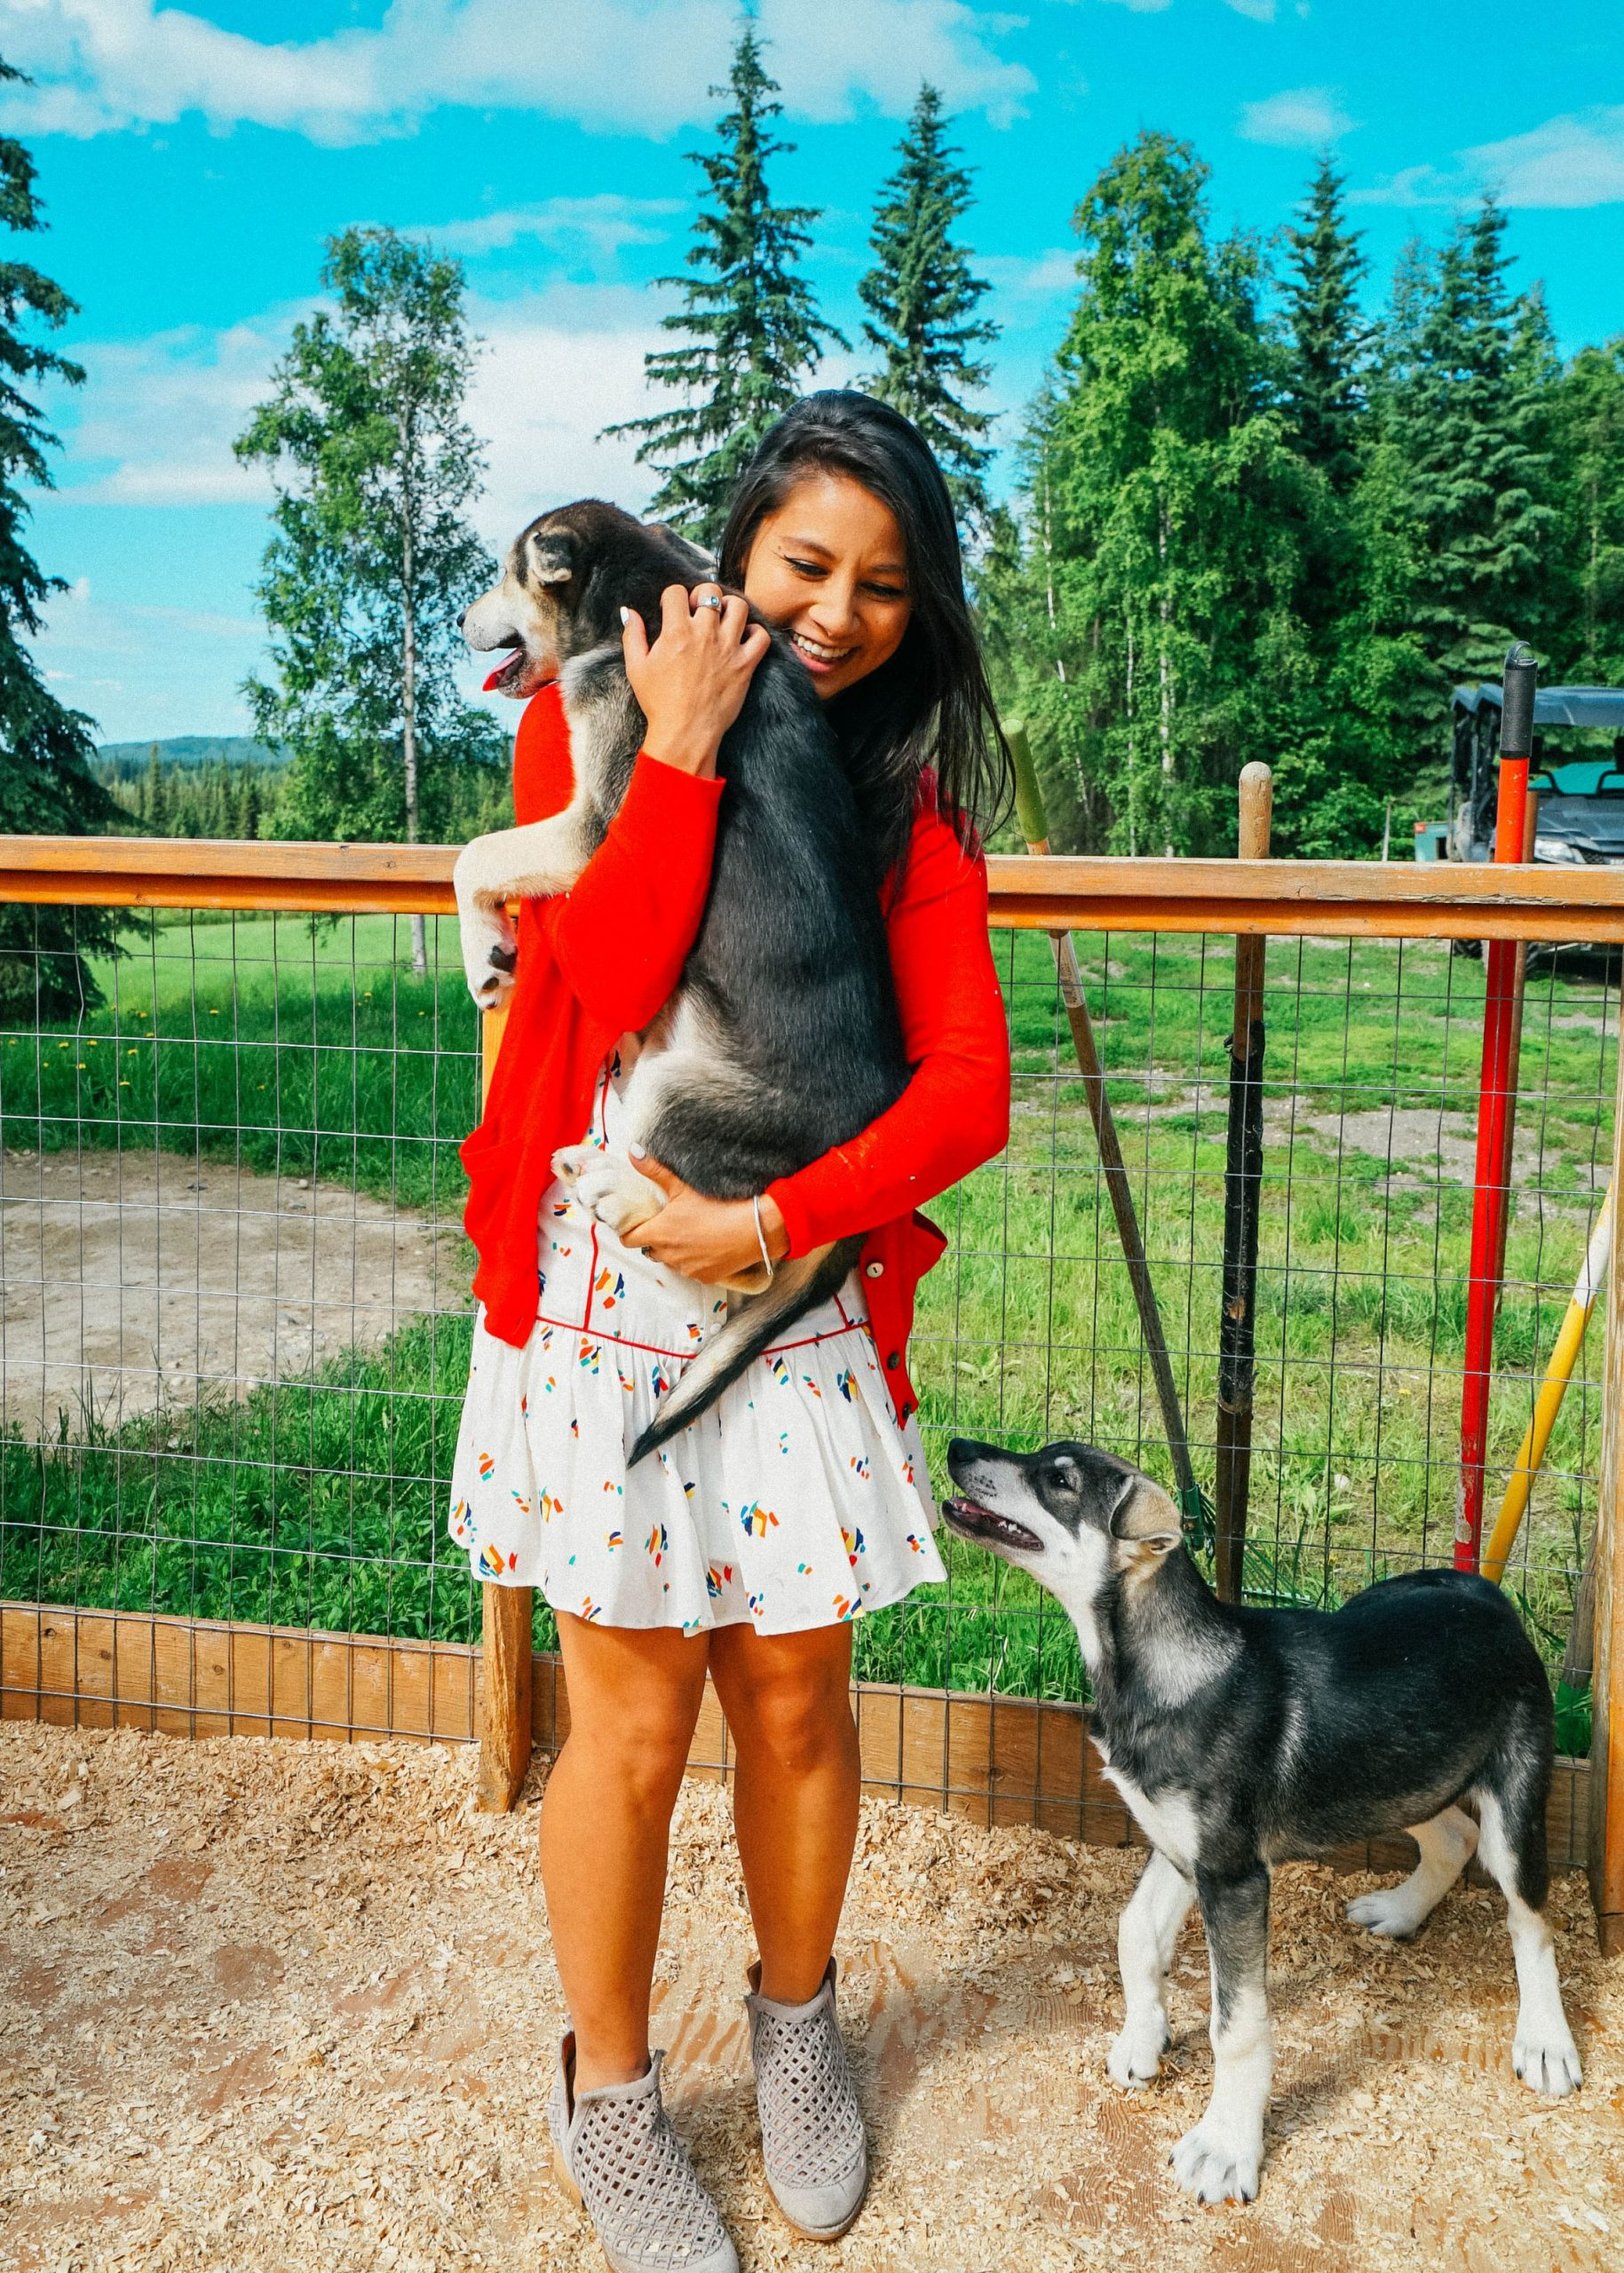 Playing with kennel dogs and puppies at Alaska's Paws For Adventure.